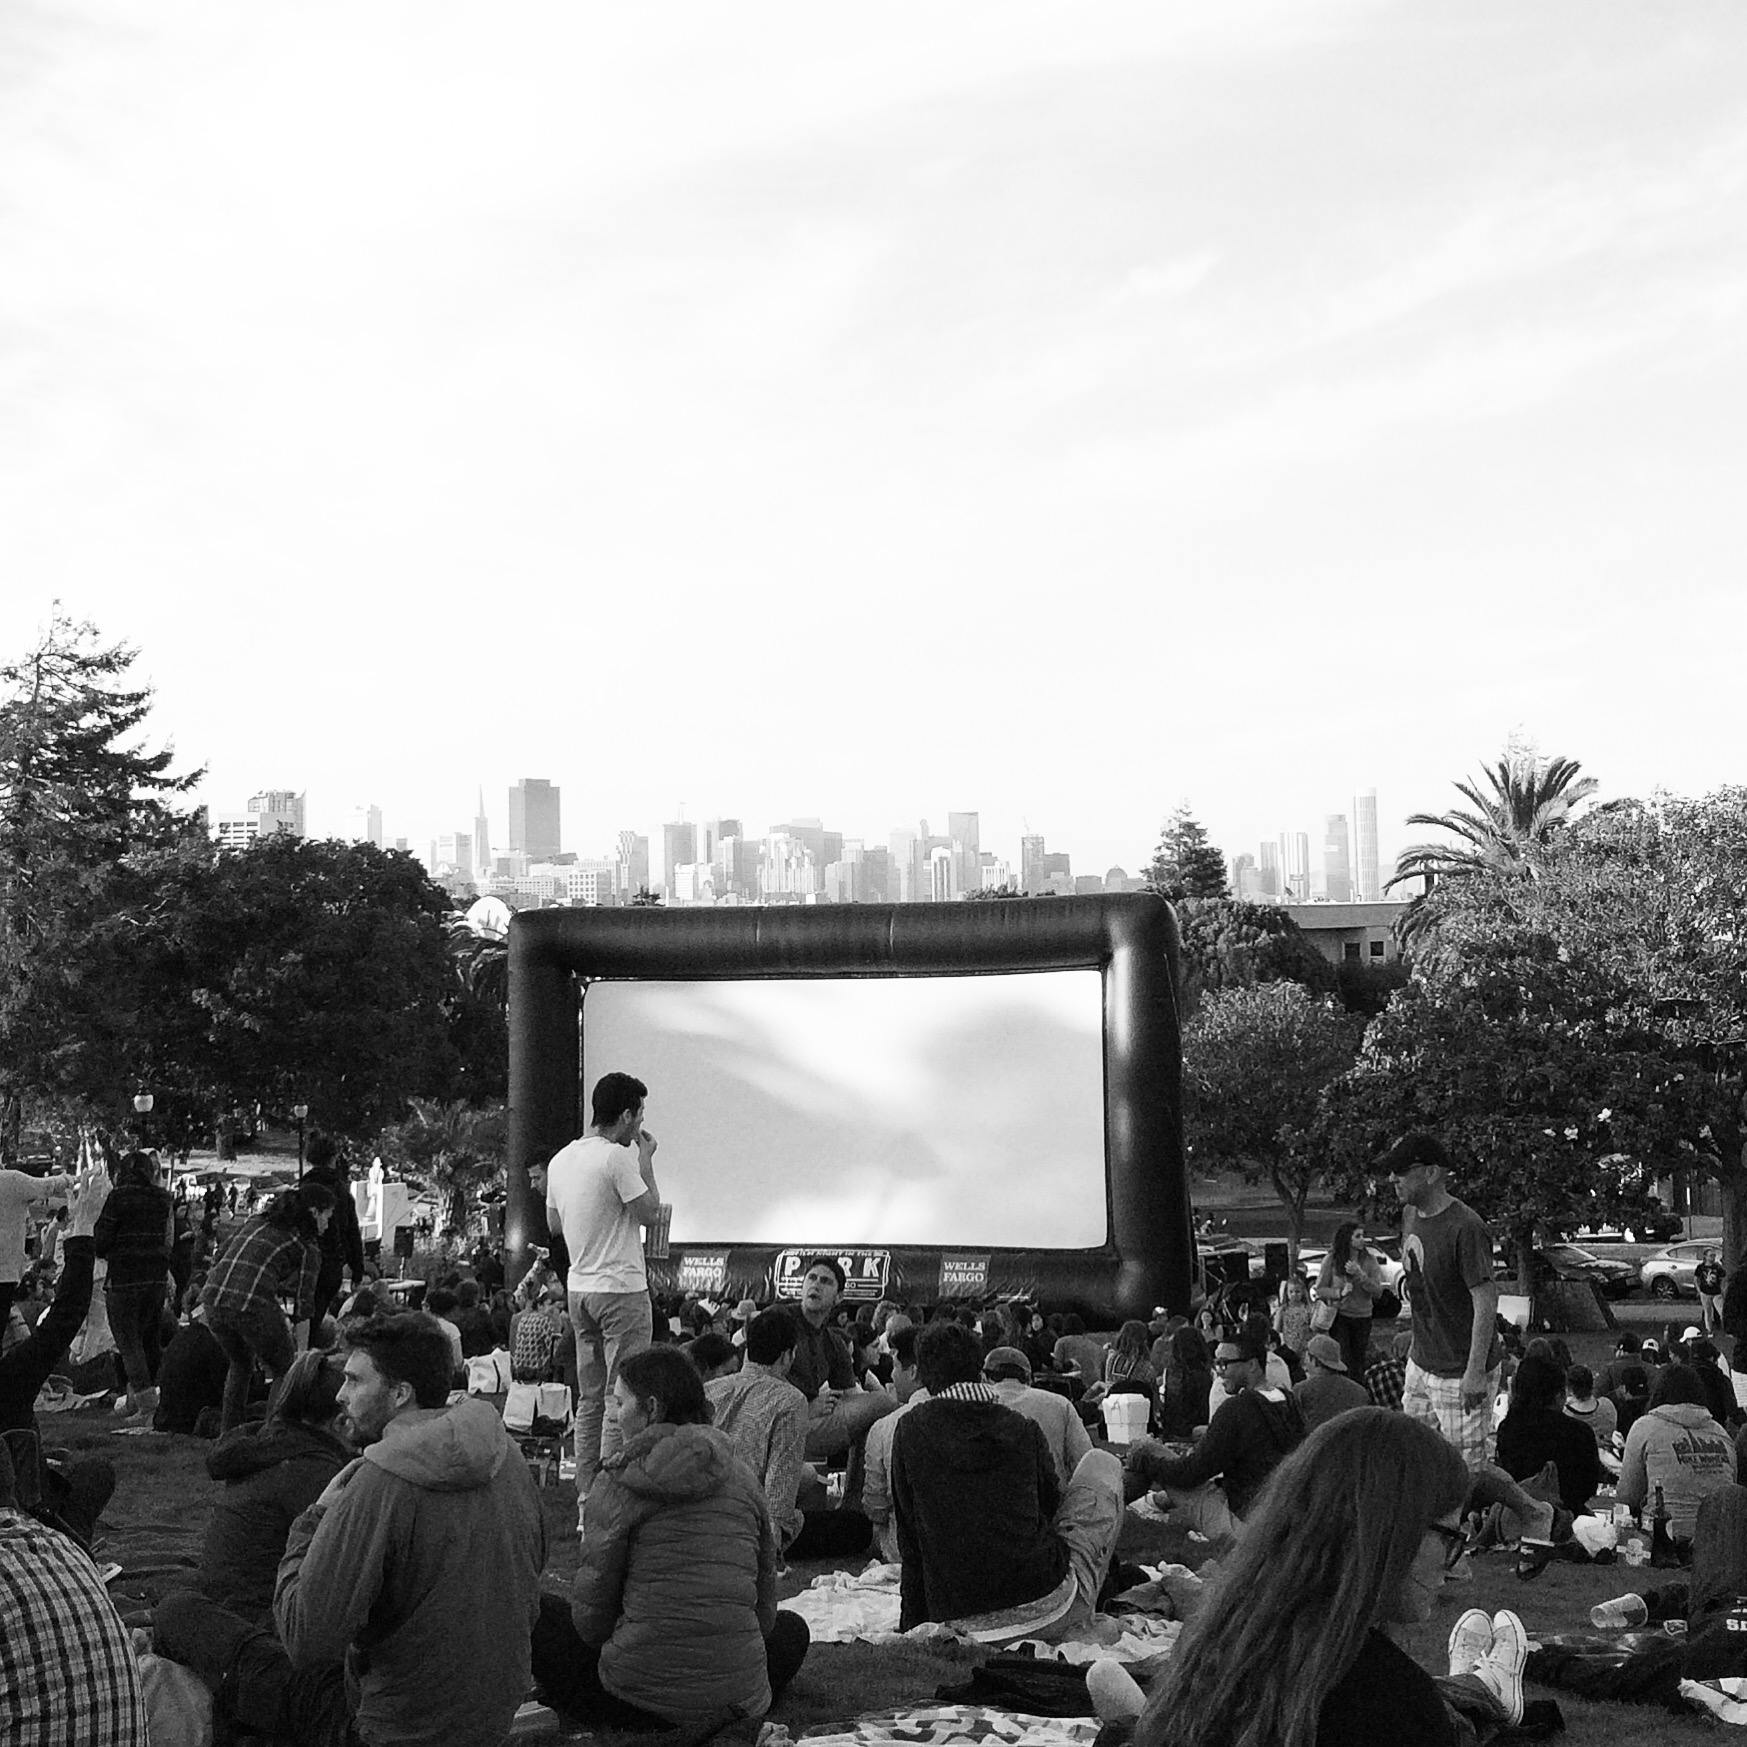 Movie in Delores Park